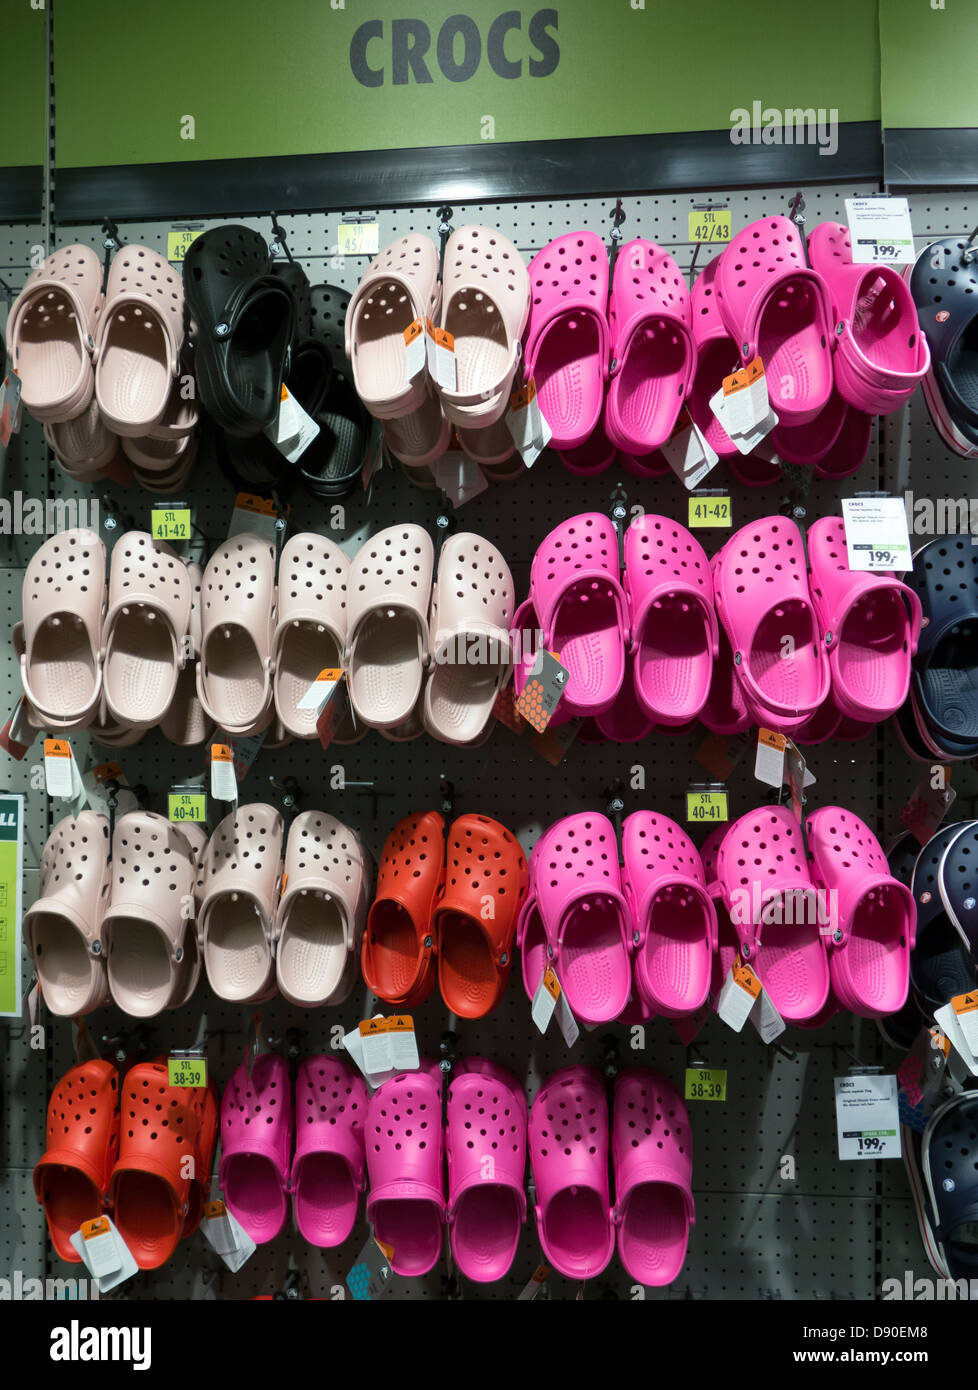 Crocs shoes on display stand in a footwear shop. - Stock Image